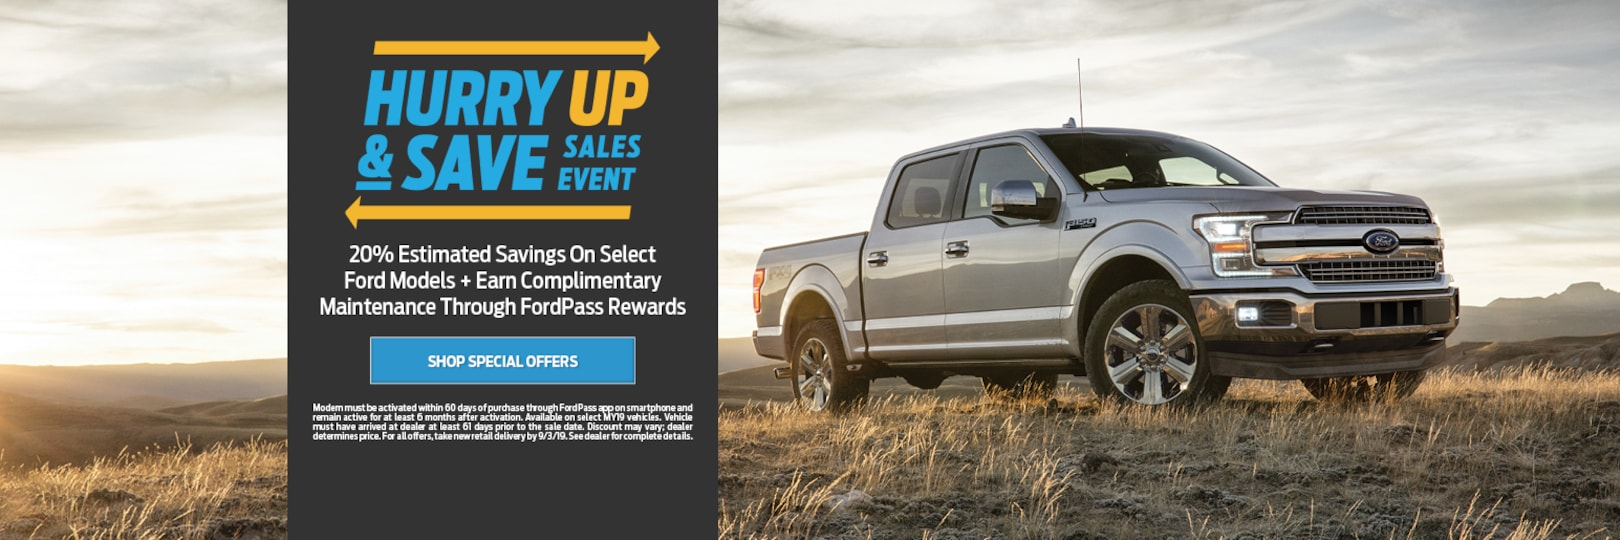 Colonial Ford Danbury >> New 2019 & 2020 Ford Dealer | Colonial Ford in Danbury, CT